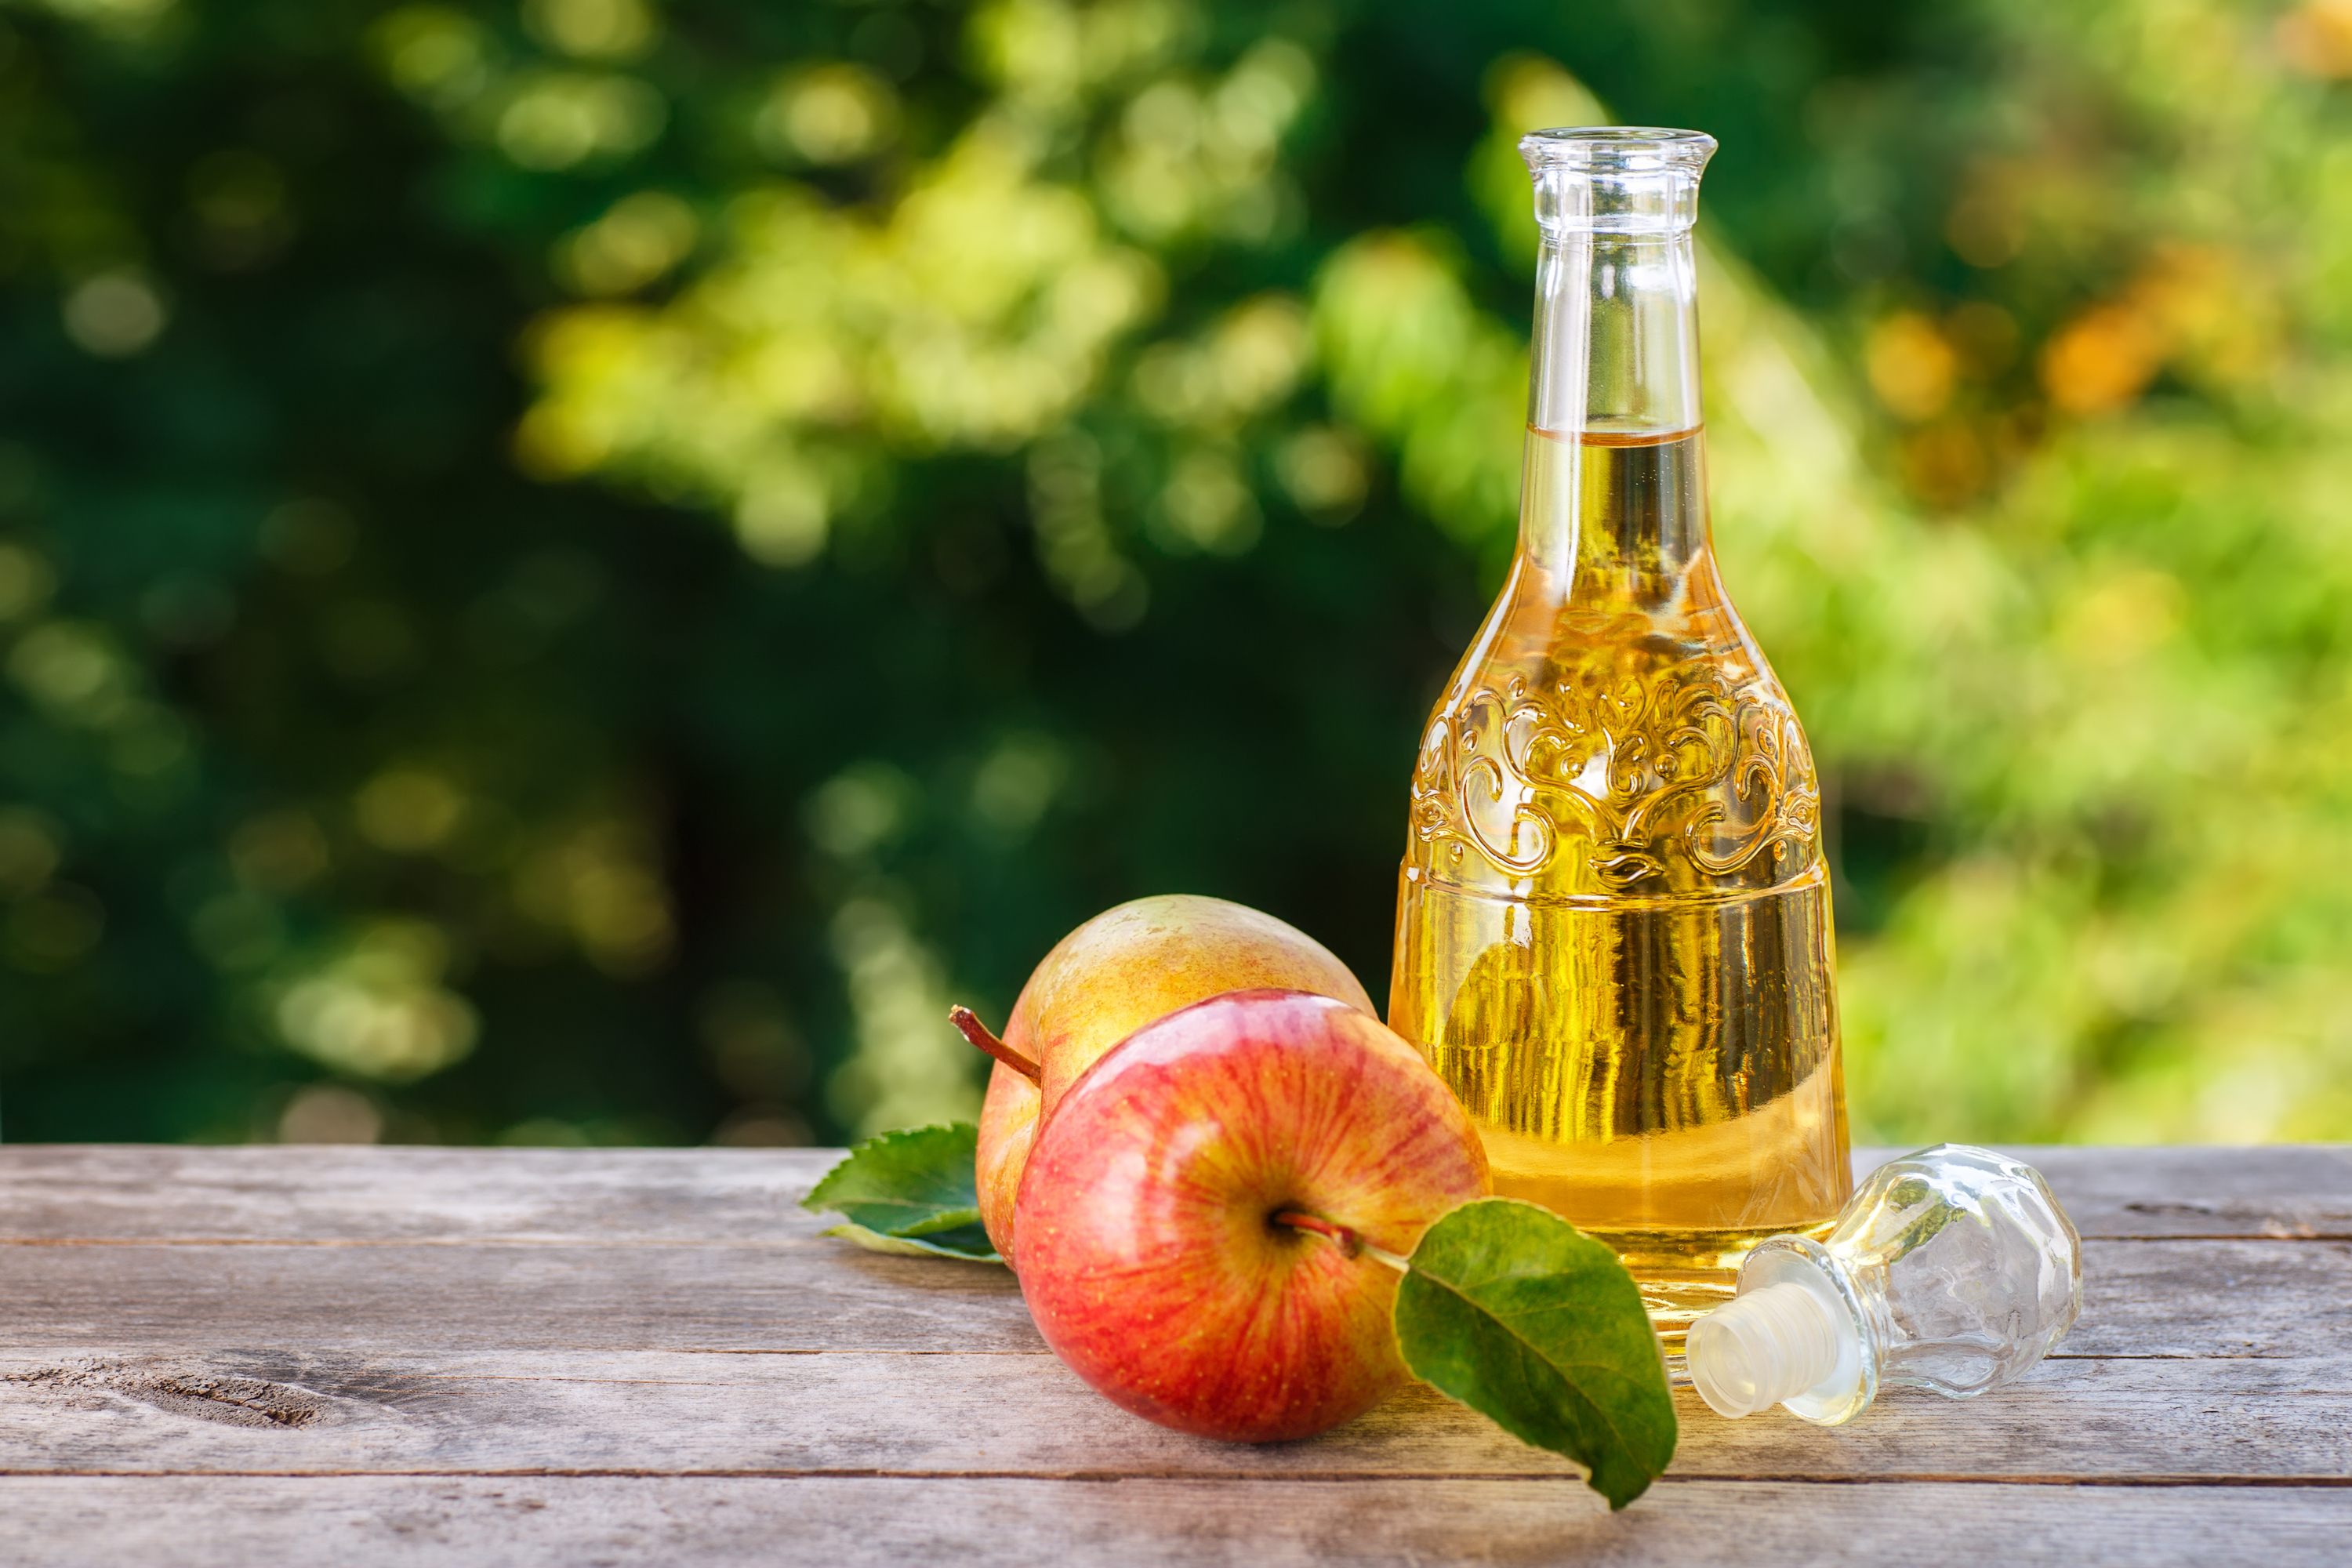 apple cider vinegar | vinegar | garden | ph levels | cleaner | pesticide | natural pesticide | fertilizer | natural fertilizer | garden fertilizer